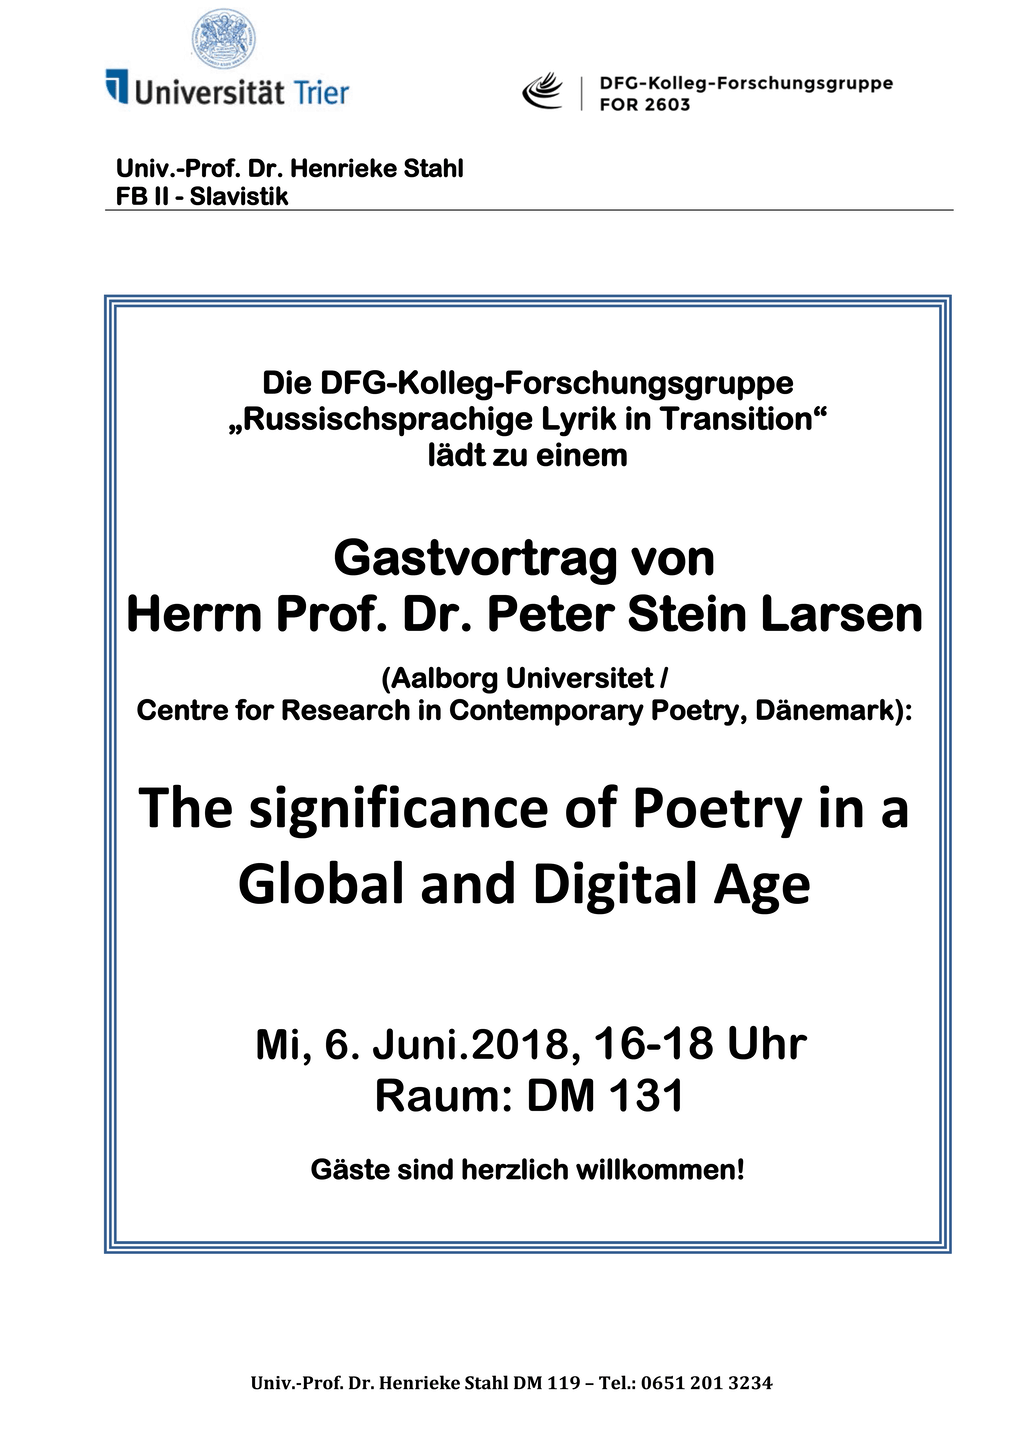 https://lyrik-in-transition.uni-trier.de/wp-content/uploads/2018/05/Larsen-bild.png